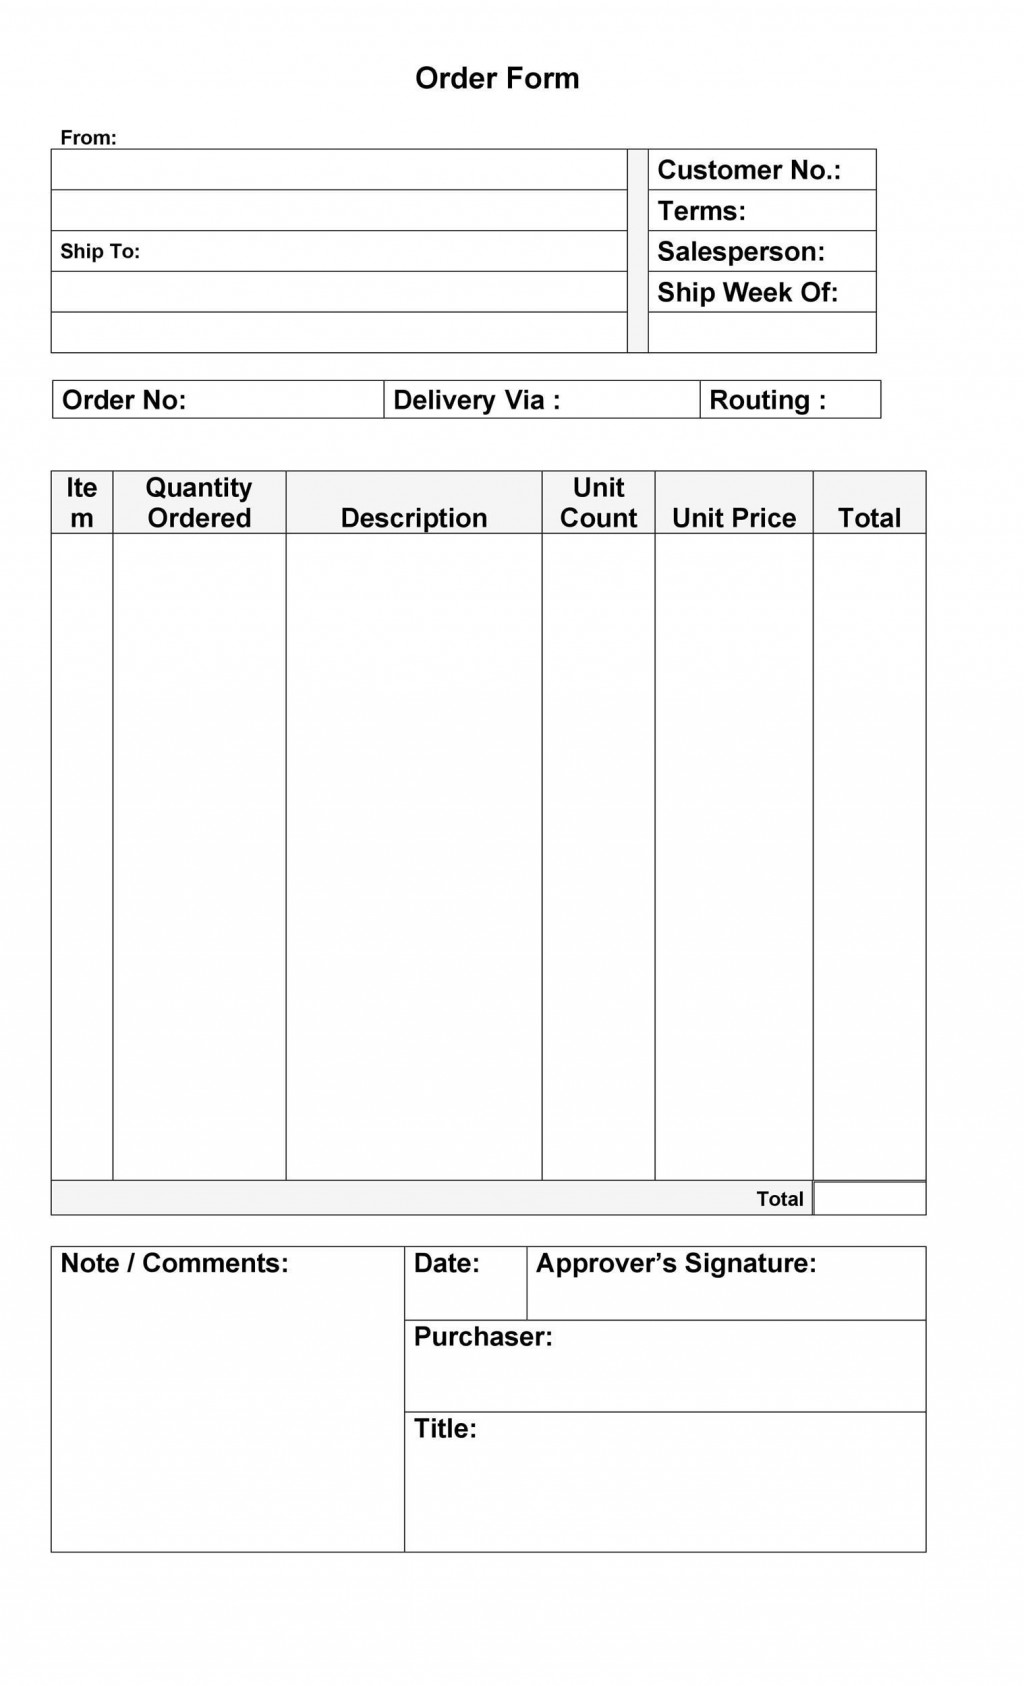 007 Formidable Food Order Form Template Word Highest Clarity Large